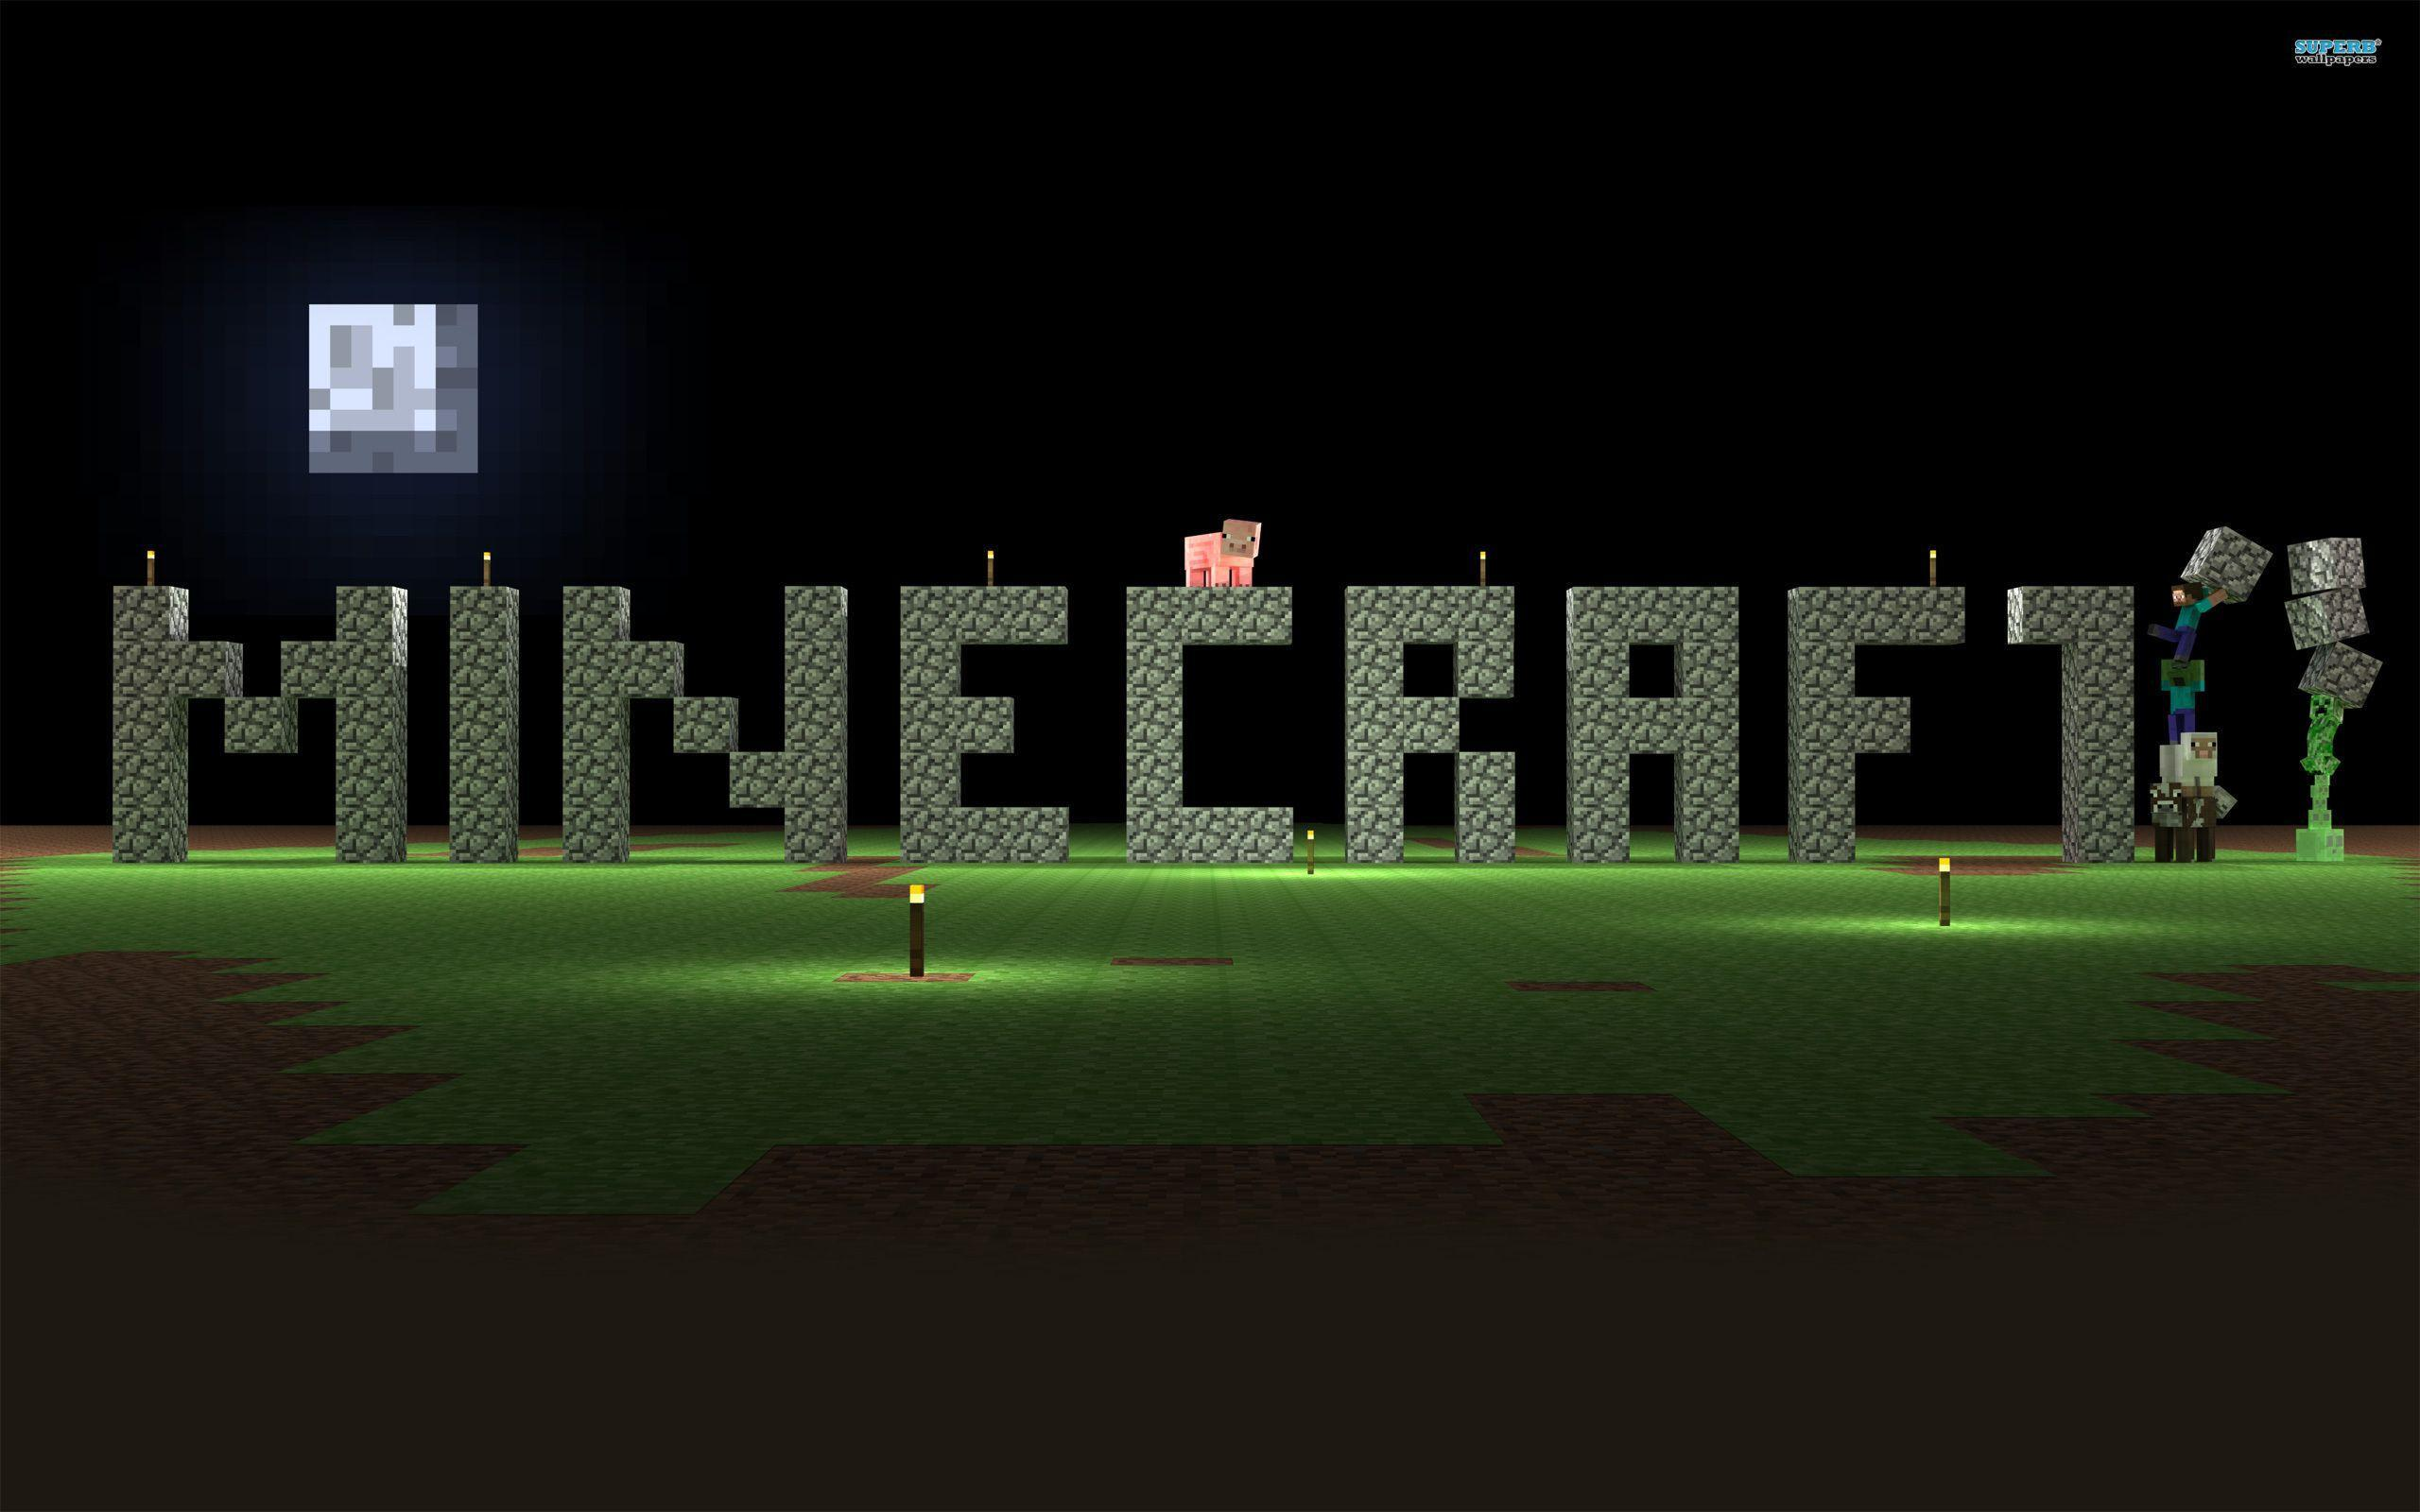 Wallpapers For > Awesome Minecraft Wallpapers For Desktop